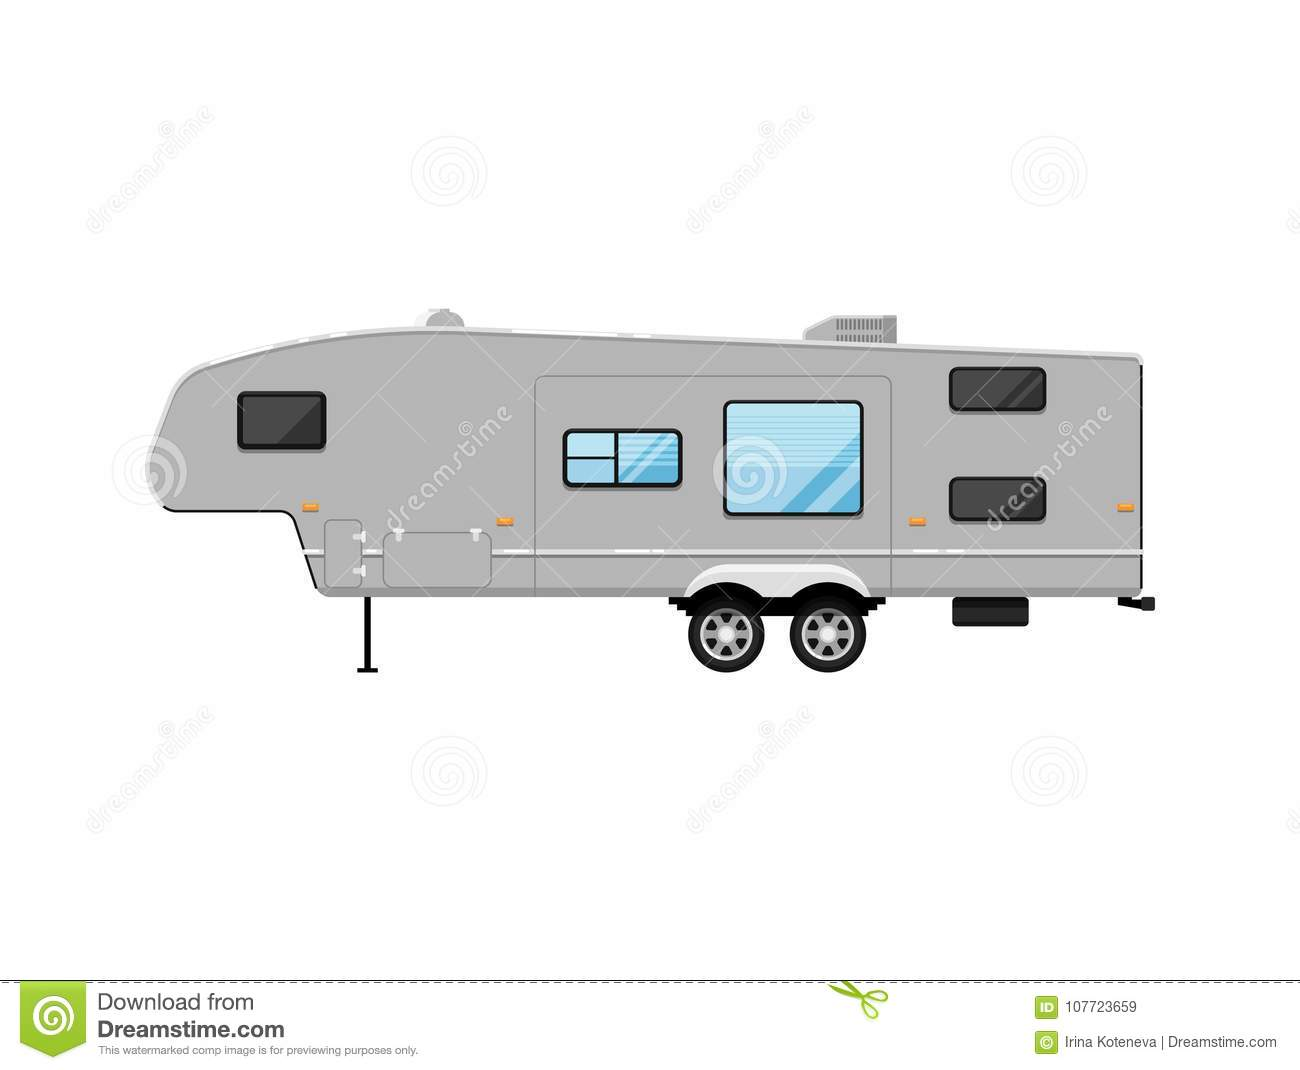 Big Modern Travel Trailer Isolated On White Icon Stock Vector ... on nashua nh homes, country mountains, country decks, country modular homes, country land, country texas homes, cabin style homes, country collectibles, country louisiana homes, country style homes, simple small country homes, country windows, country cars, small trailer homes, prefab country homes, country fencing, country houses, manufactured log homes, country real estate, country landscaping,